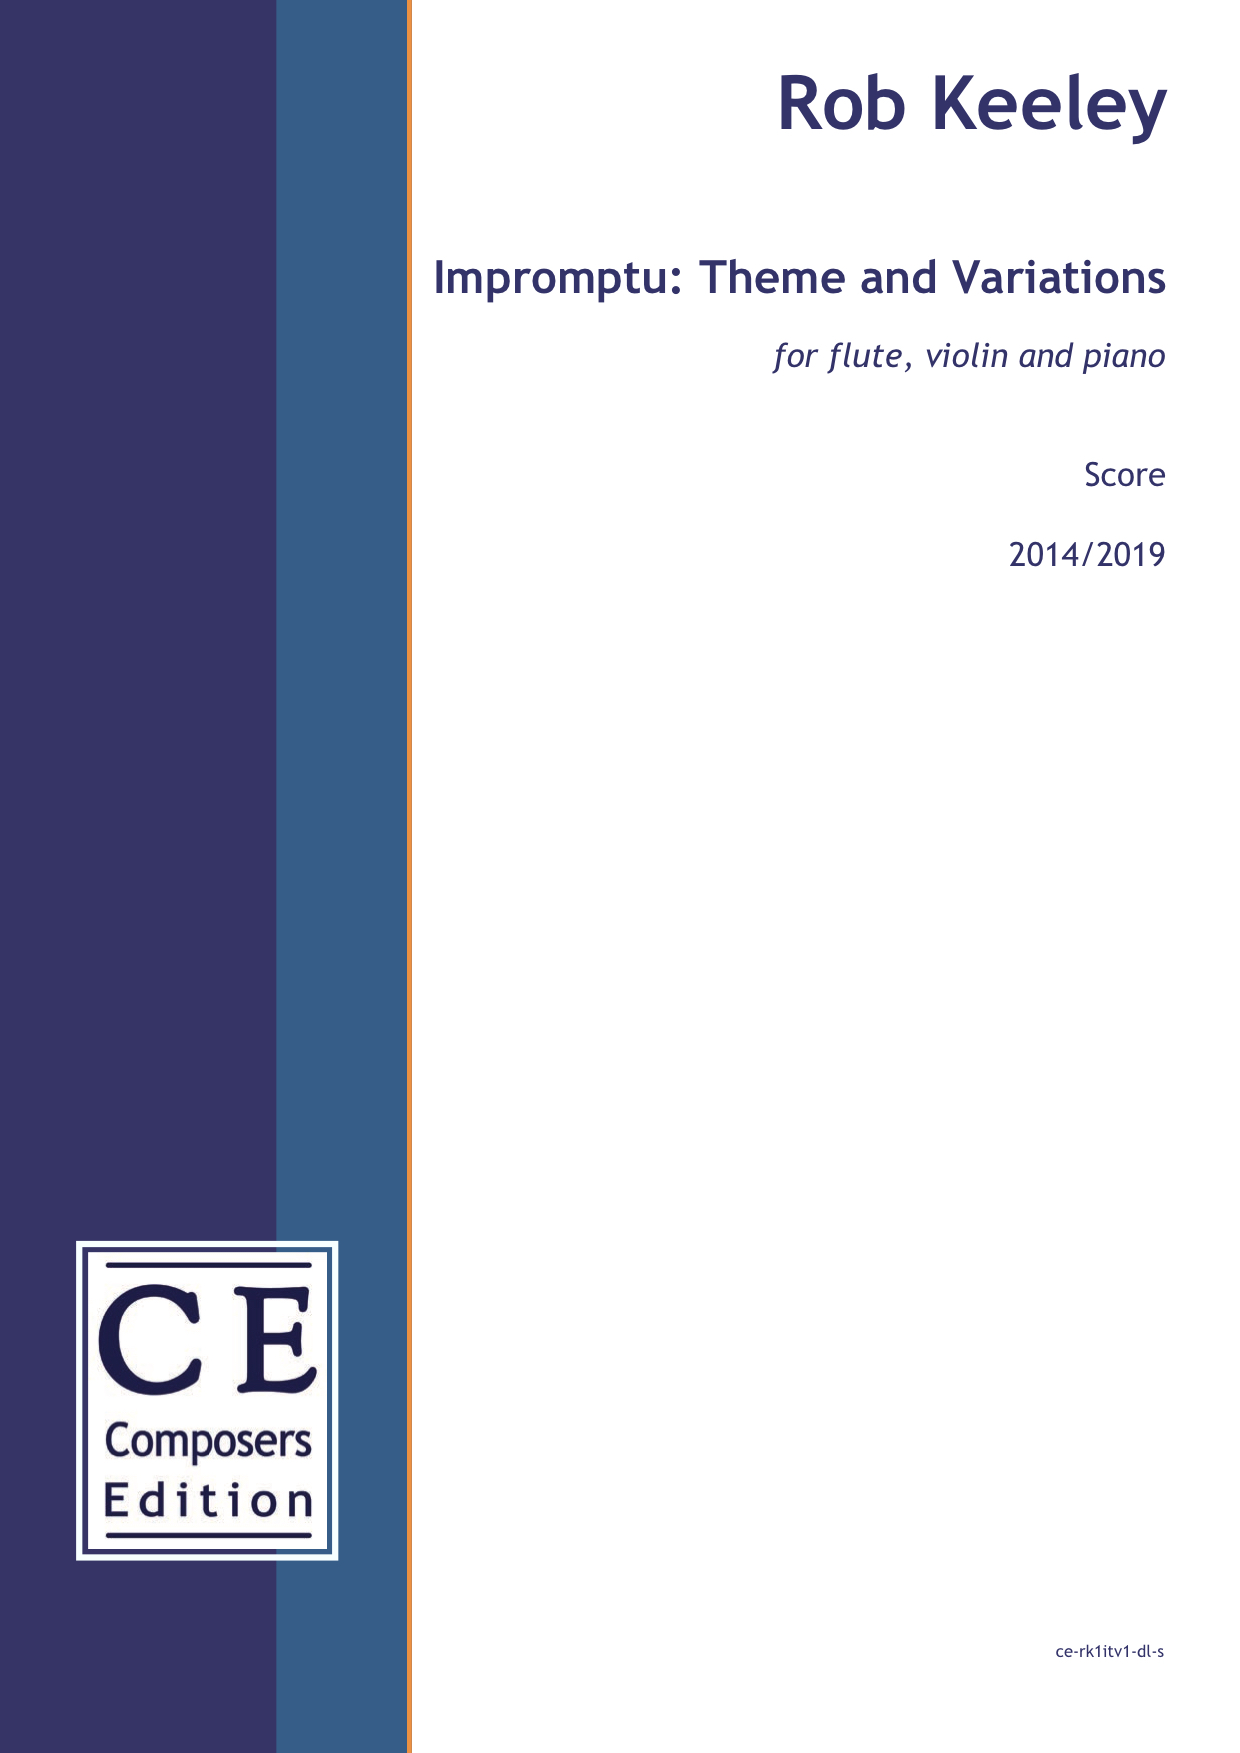 Rob Keeley: Impromptu: Theme and Variations for flute, violin and piano